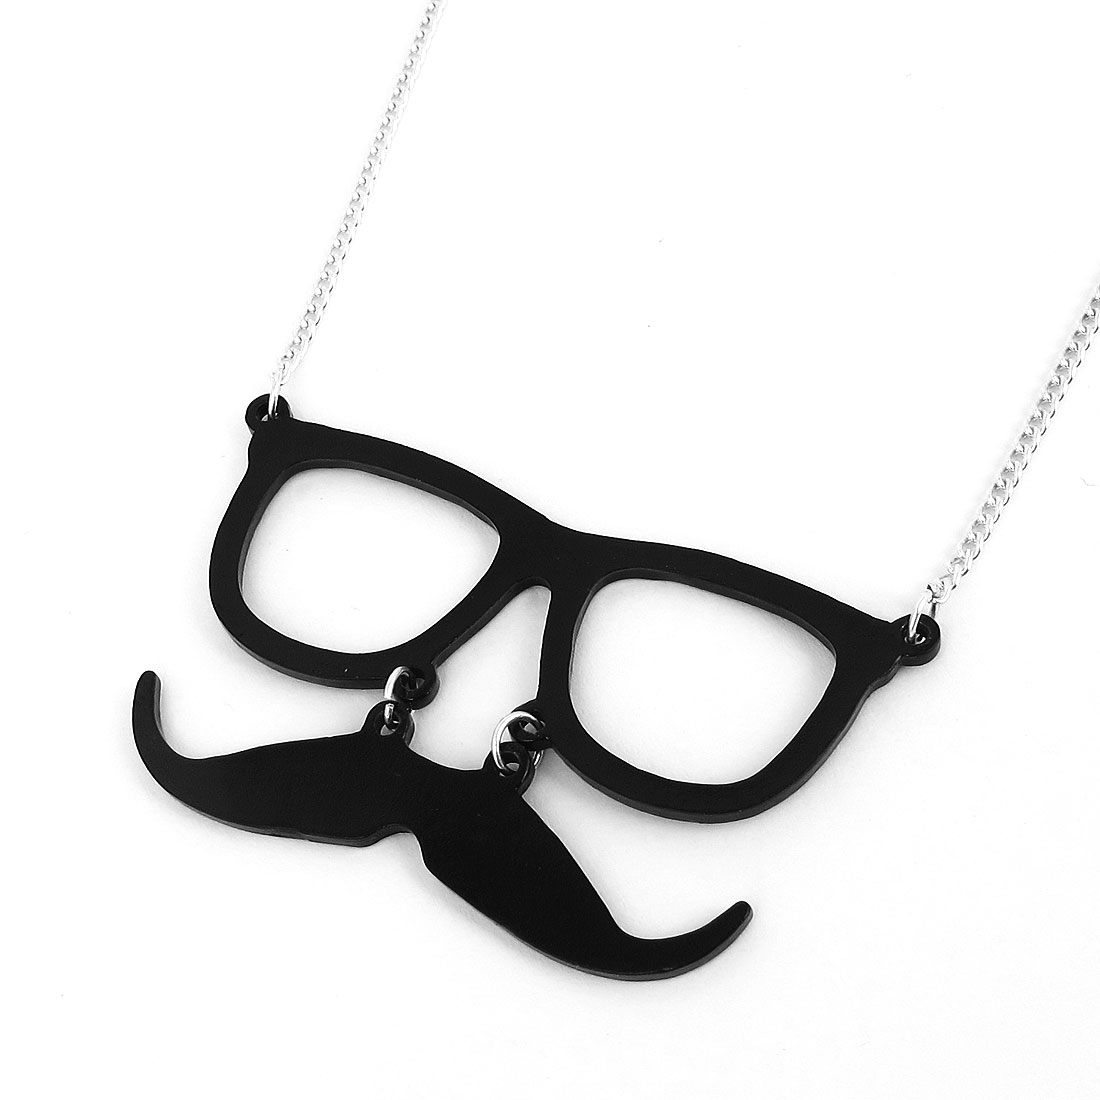 Women Metal Black Glasses Frame Shape Mustache Design Pendant Strip Link Slim Chain Necklace Neckwear Collar Silver Tone